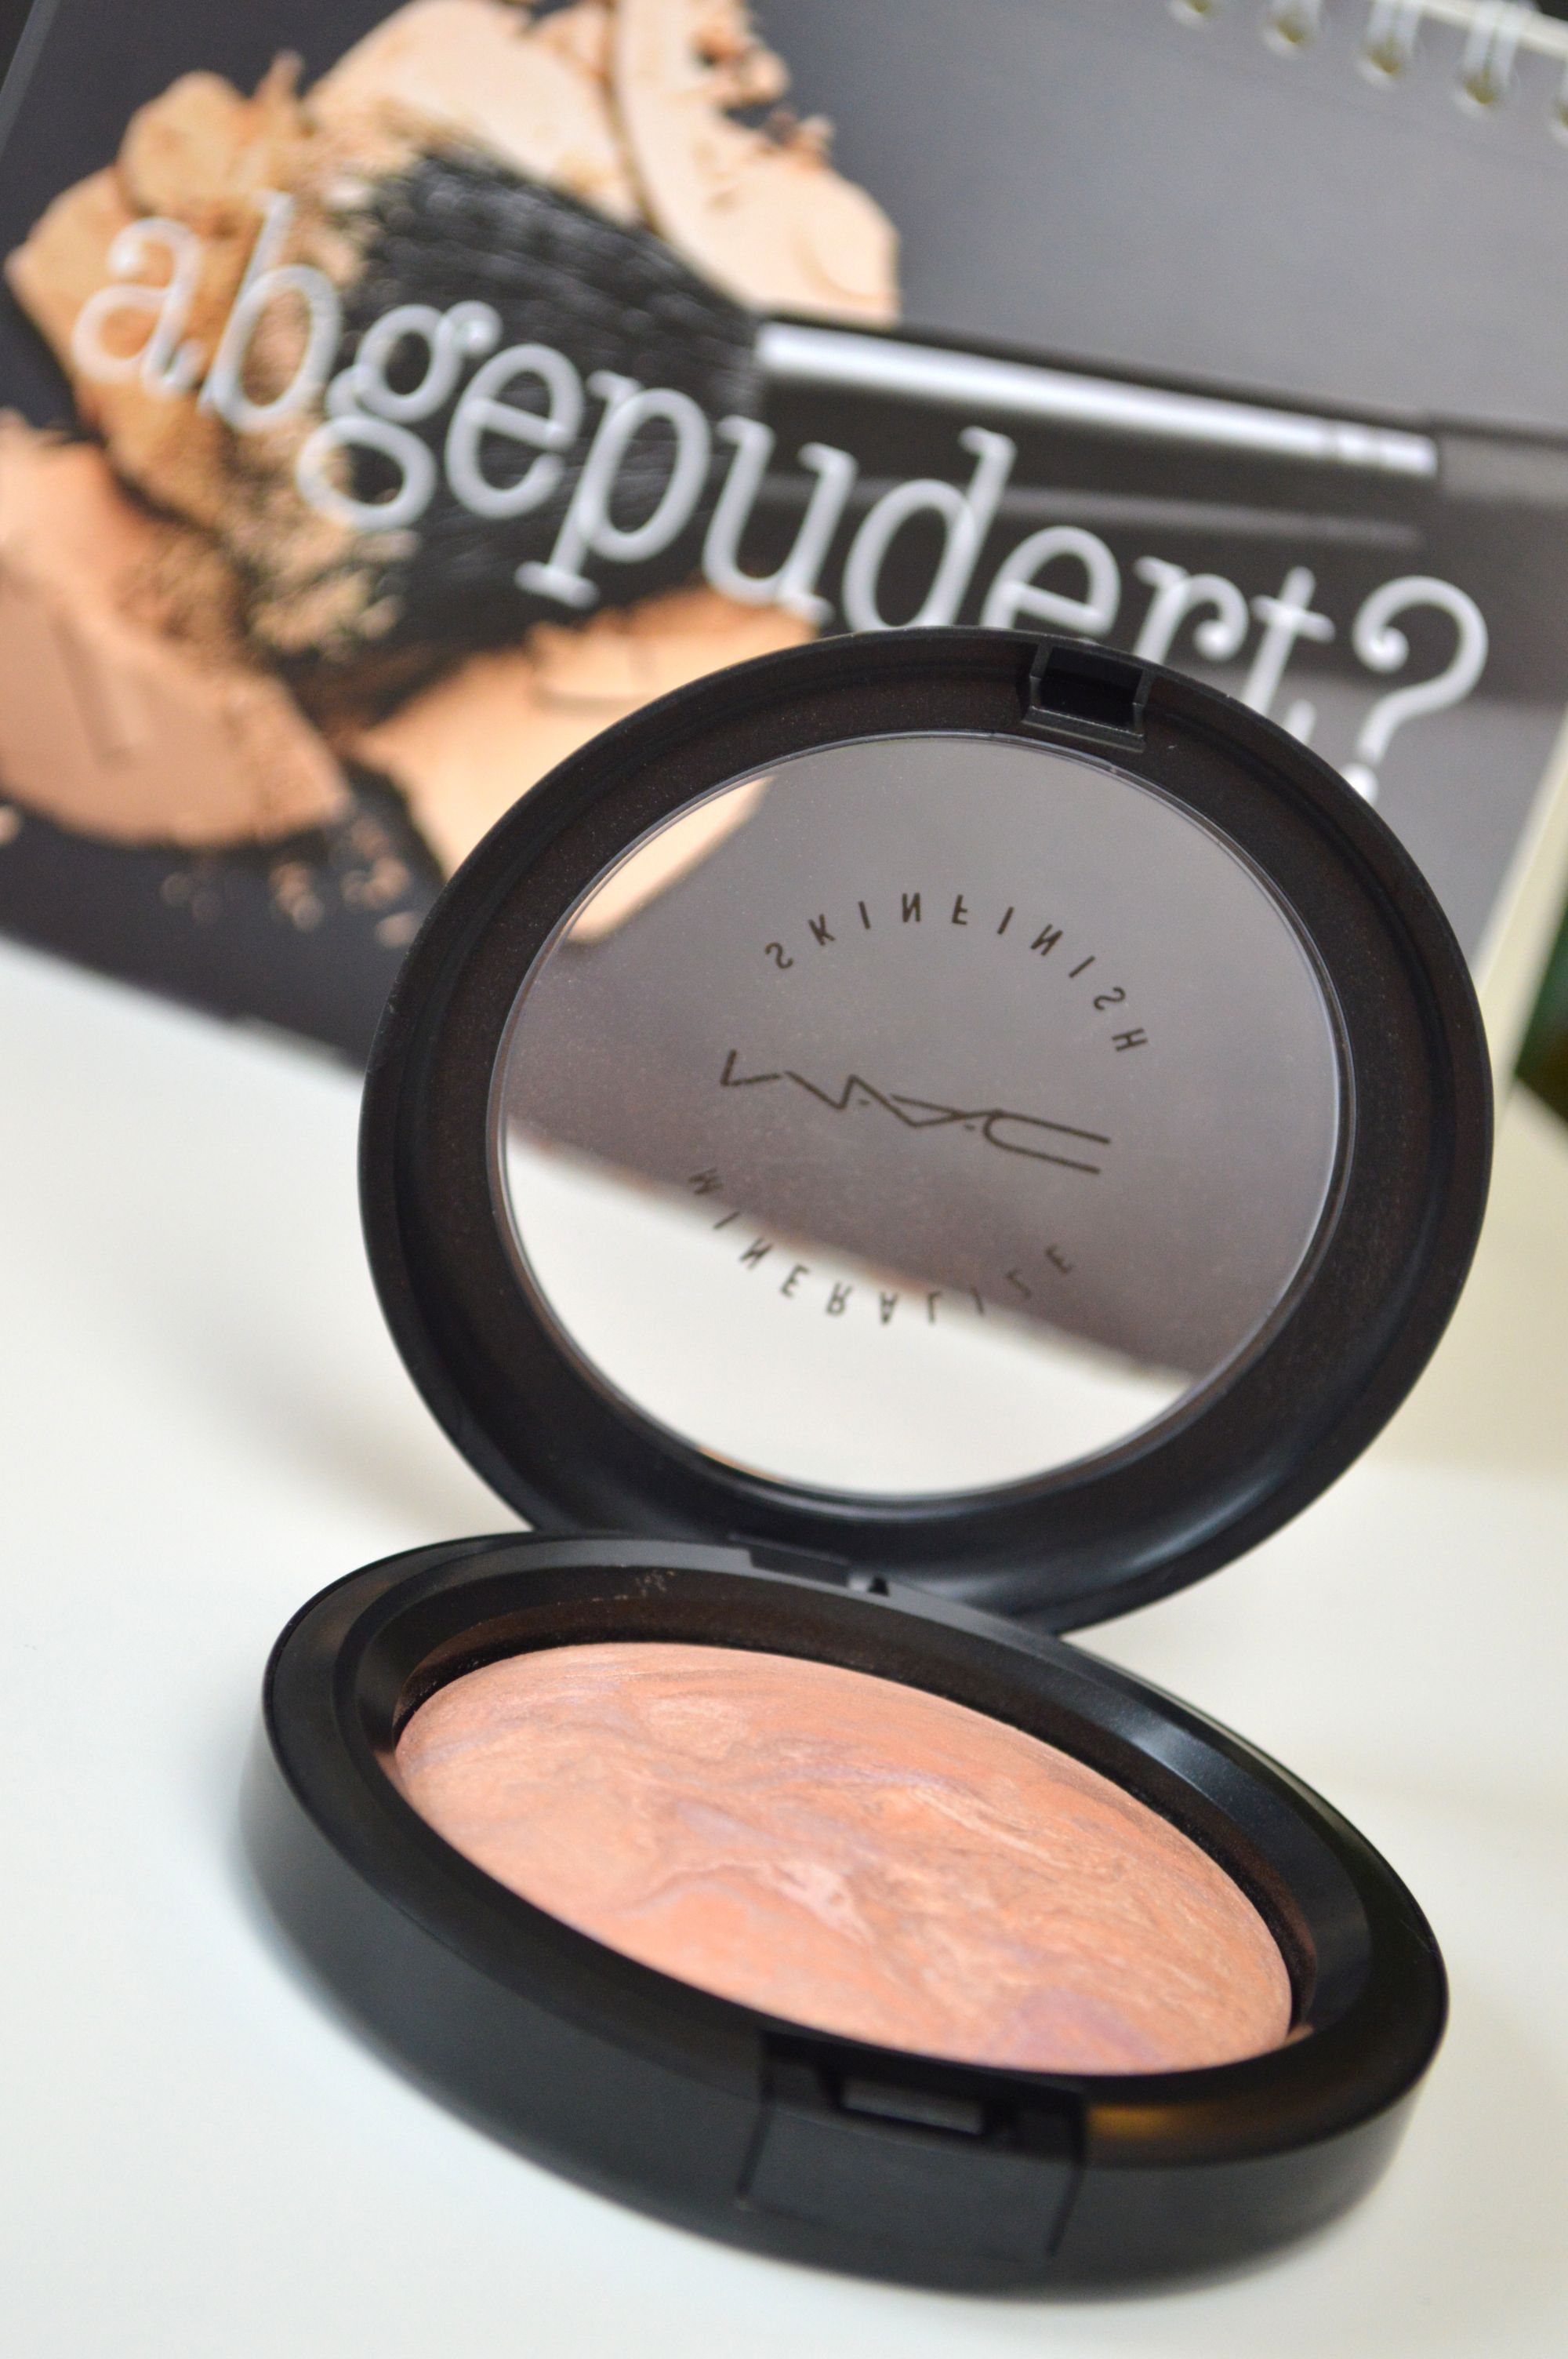 MAC_Perfect_Topping_powder